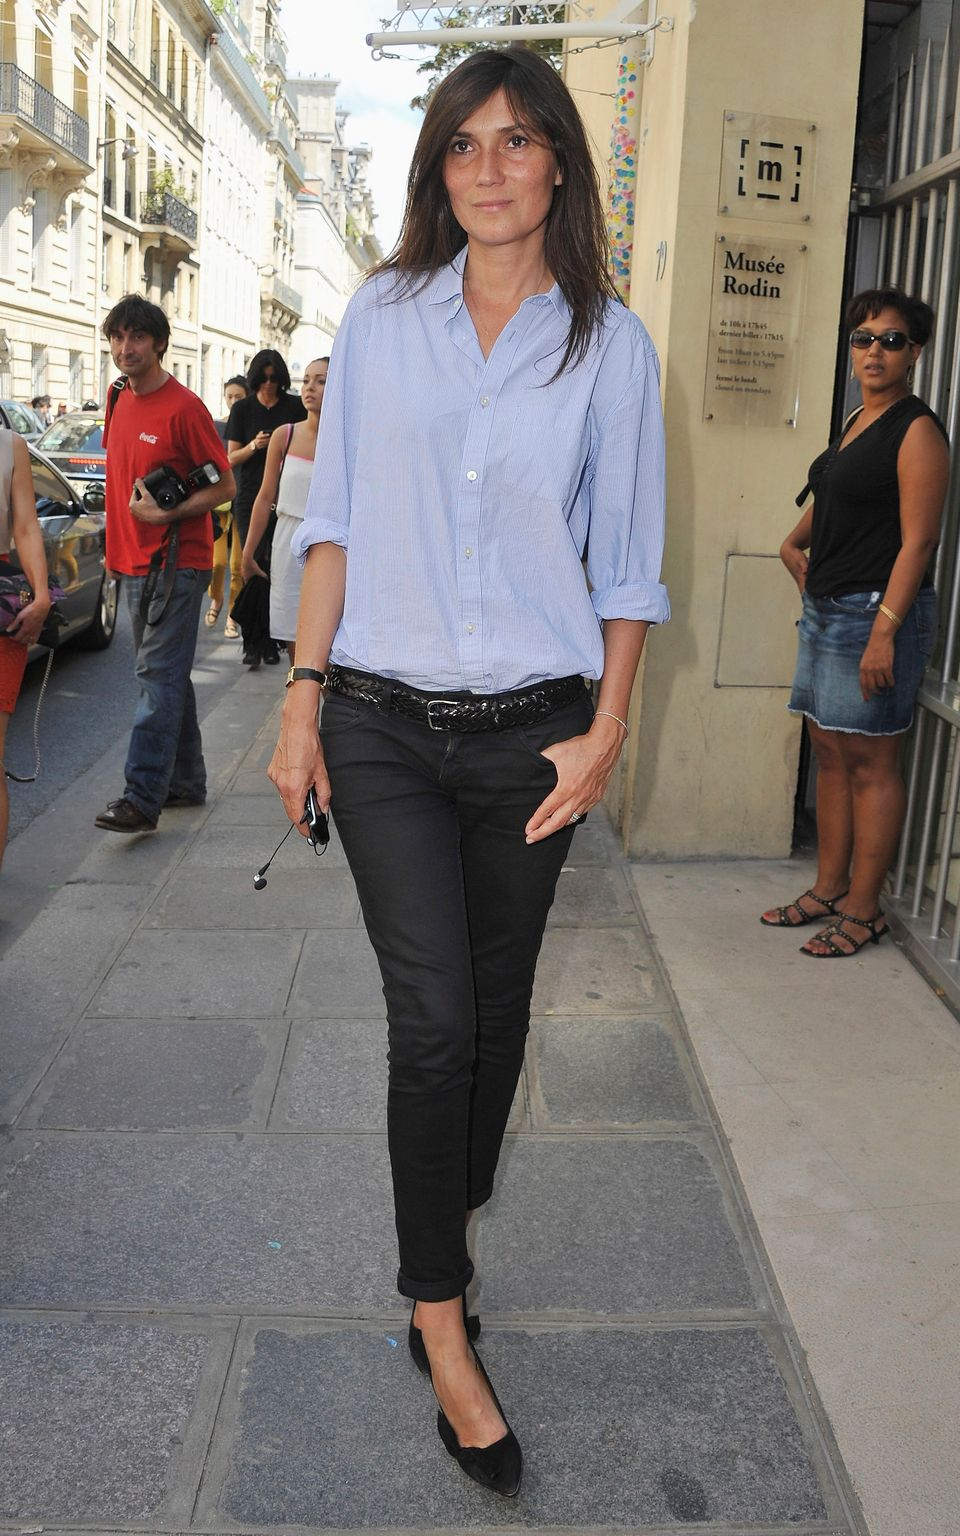 French women have low-key style days, too, but those days rarely include sweats or fleece. Instead, they do casual the classy